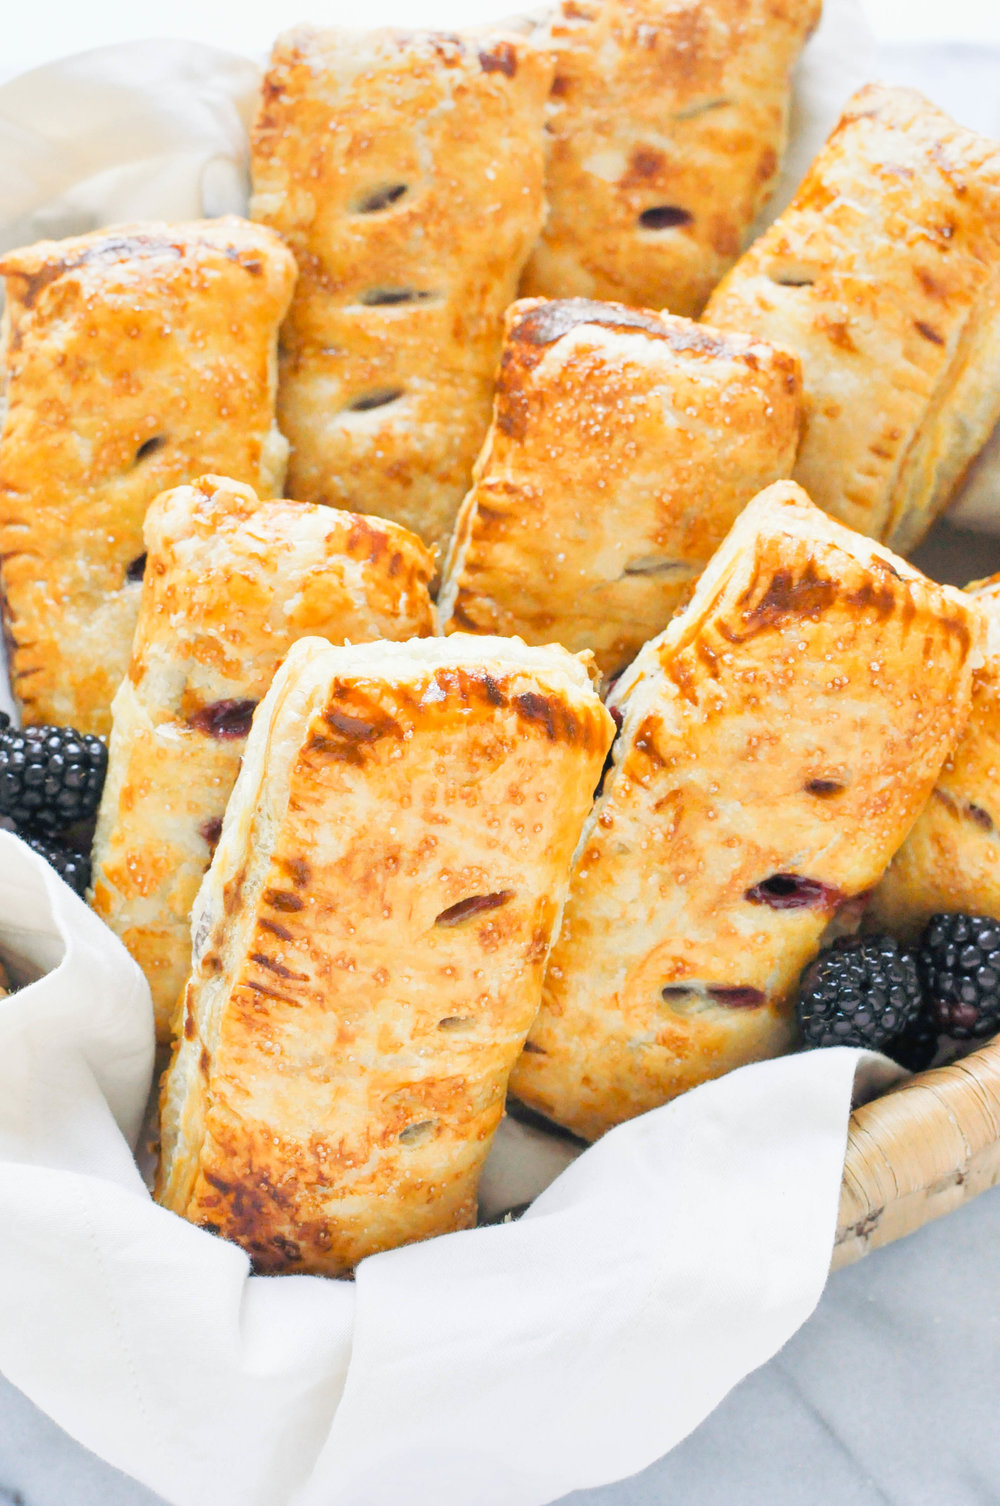 Blackberry & Apple Hand Pies (vegetarian, baking, fruit pie) | This Healthy Table